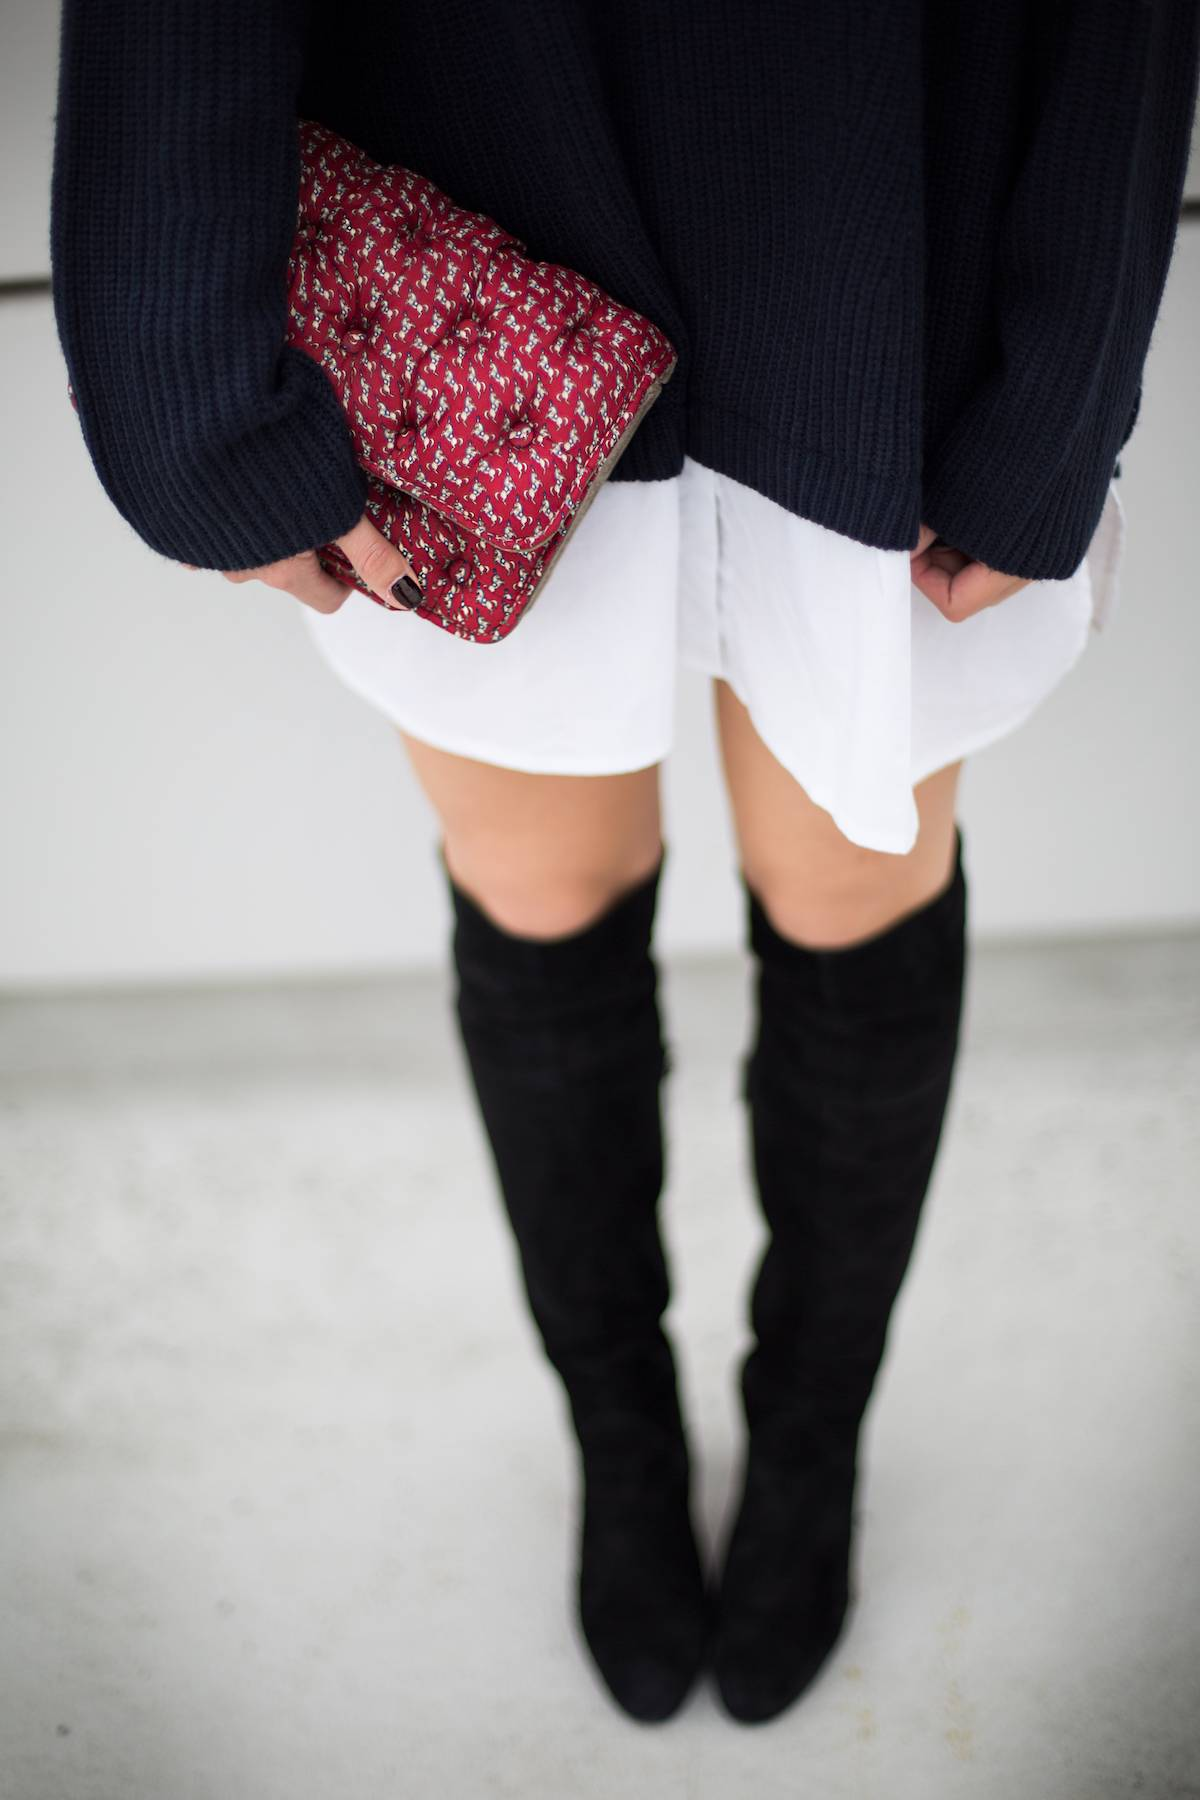 Business - Knit - Warm - Overknees - Munich - Fashionblog - German Fashionblhgger - Streetstyle - Layering - White Blouse - Weiße Bluse - Benedetta Bruzziches - Latina - Ootd - Work